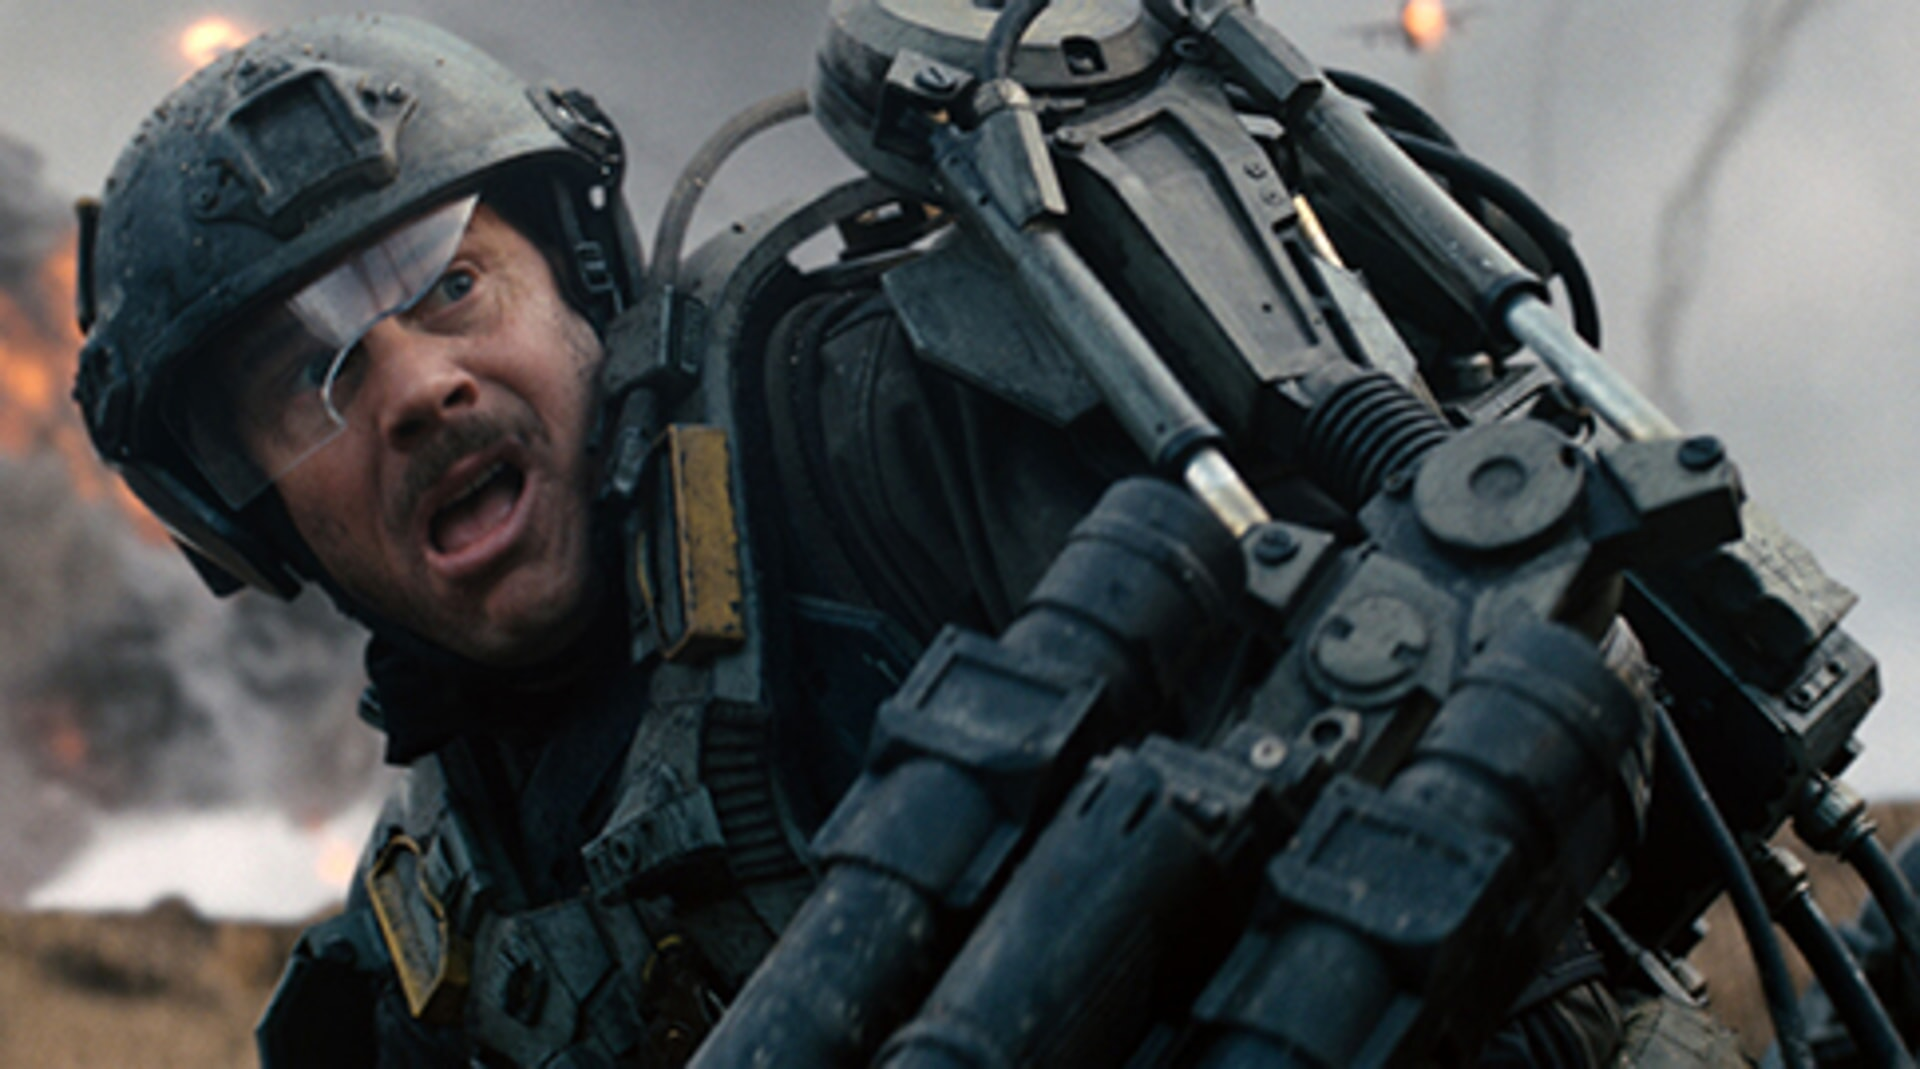 Edge of Tomorrow - Image 20